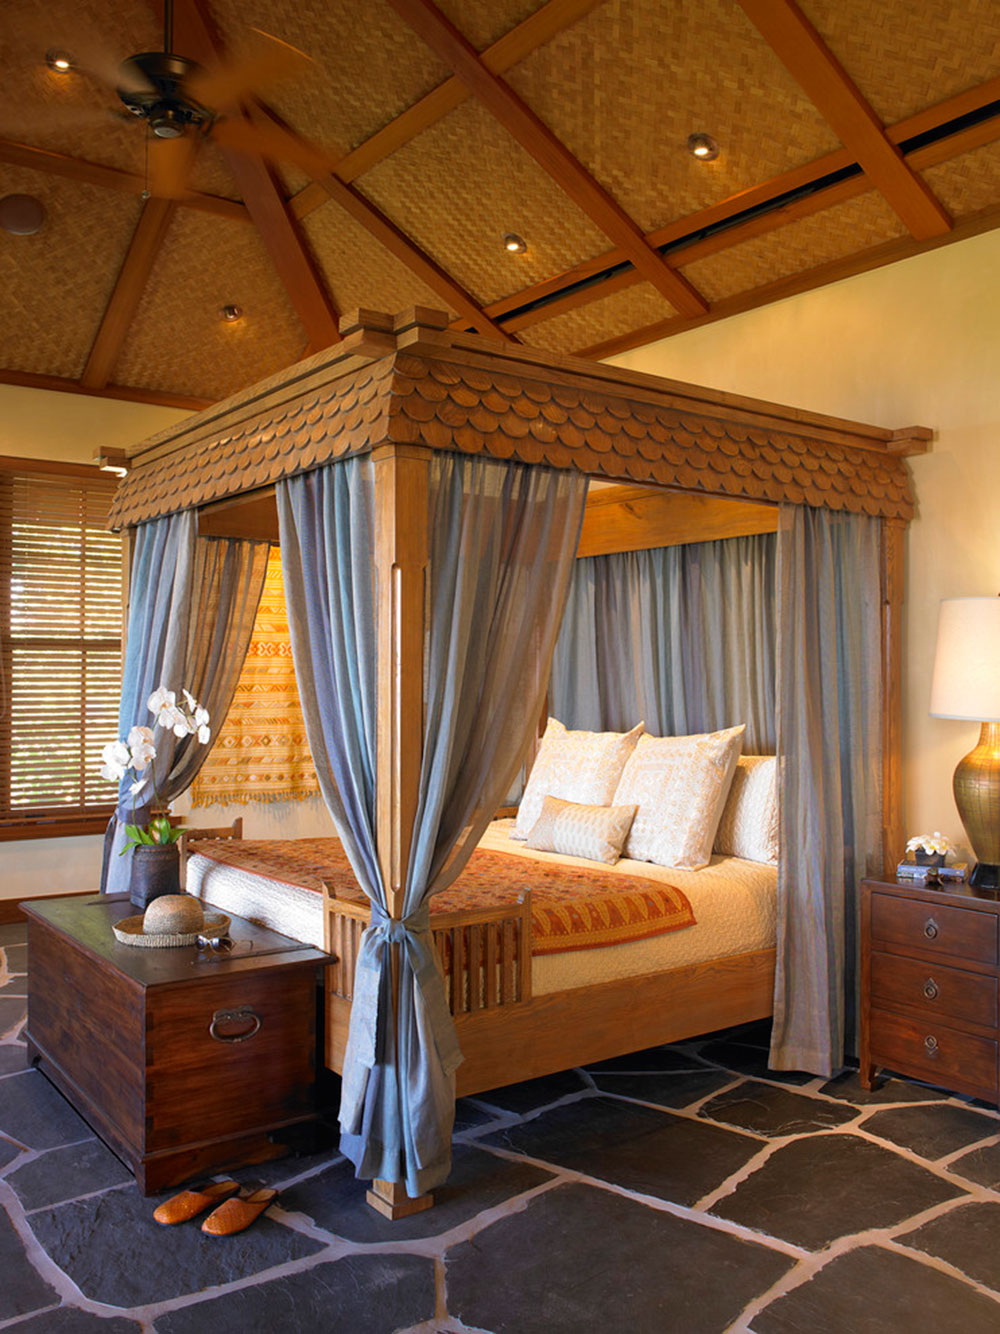 Four poster bed ideas that will delight your room 6 four poster bed ideas that will delight your room